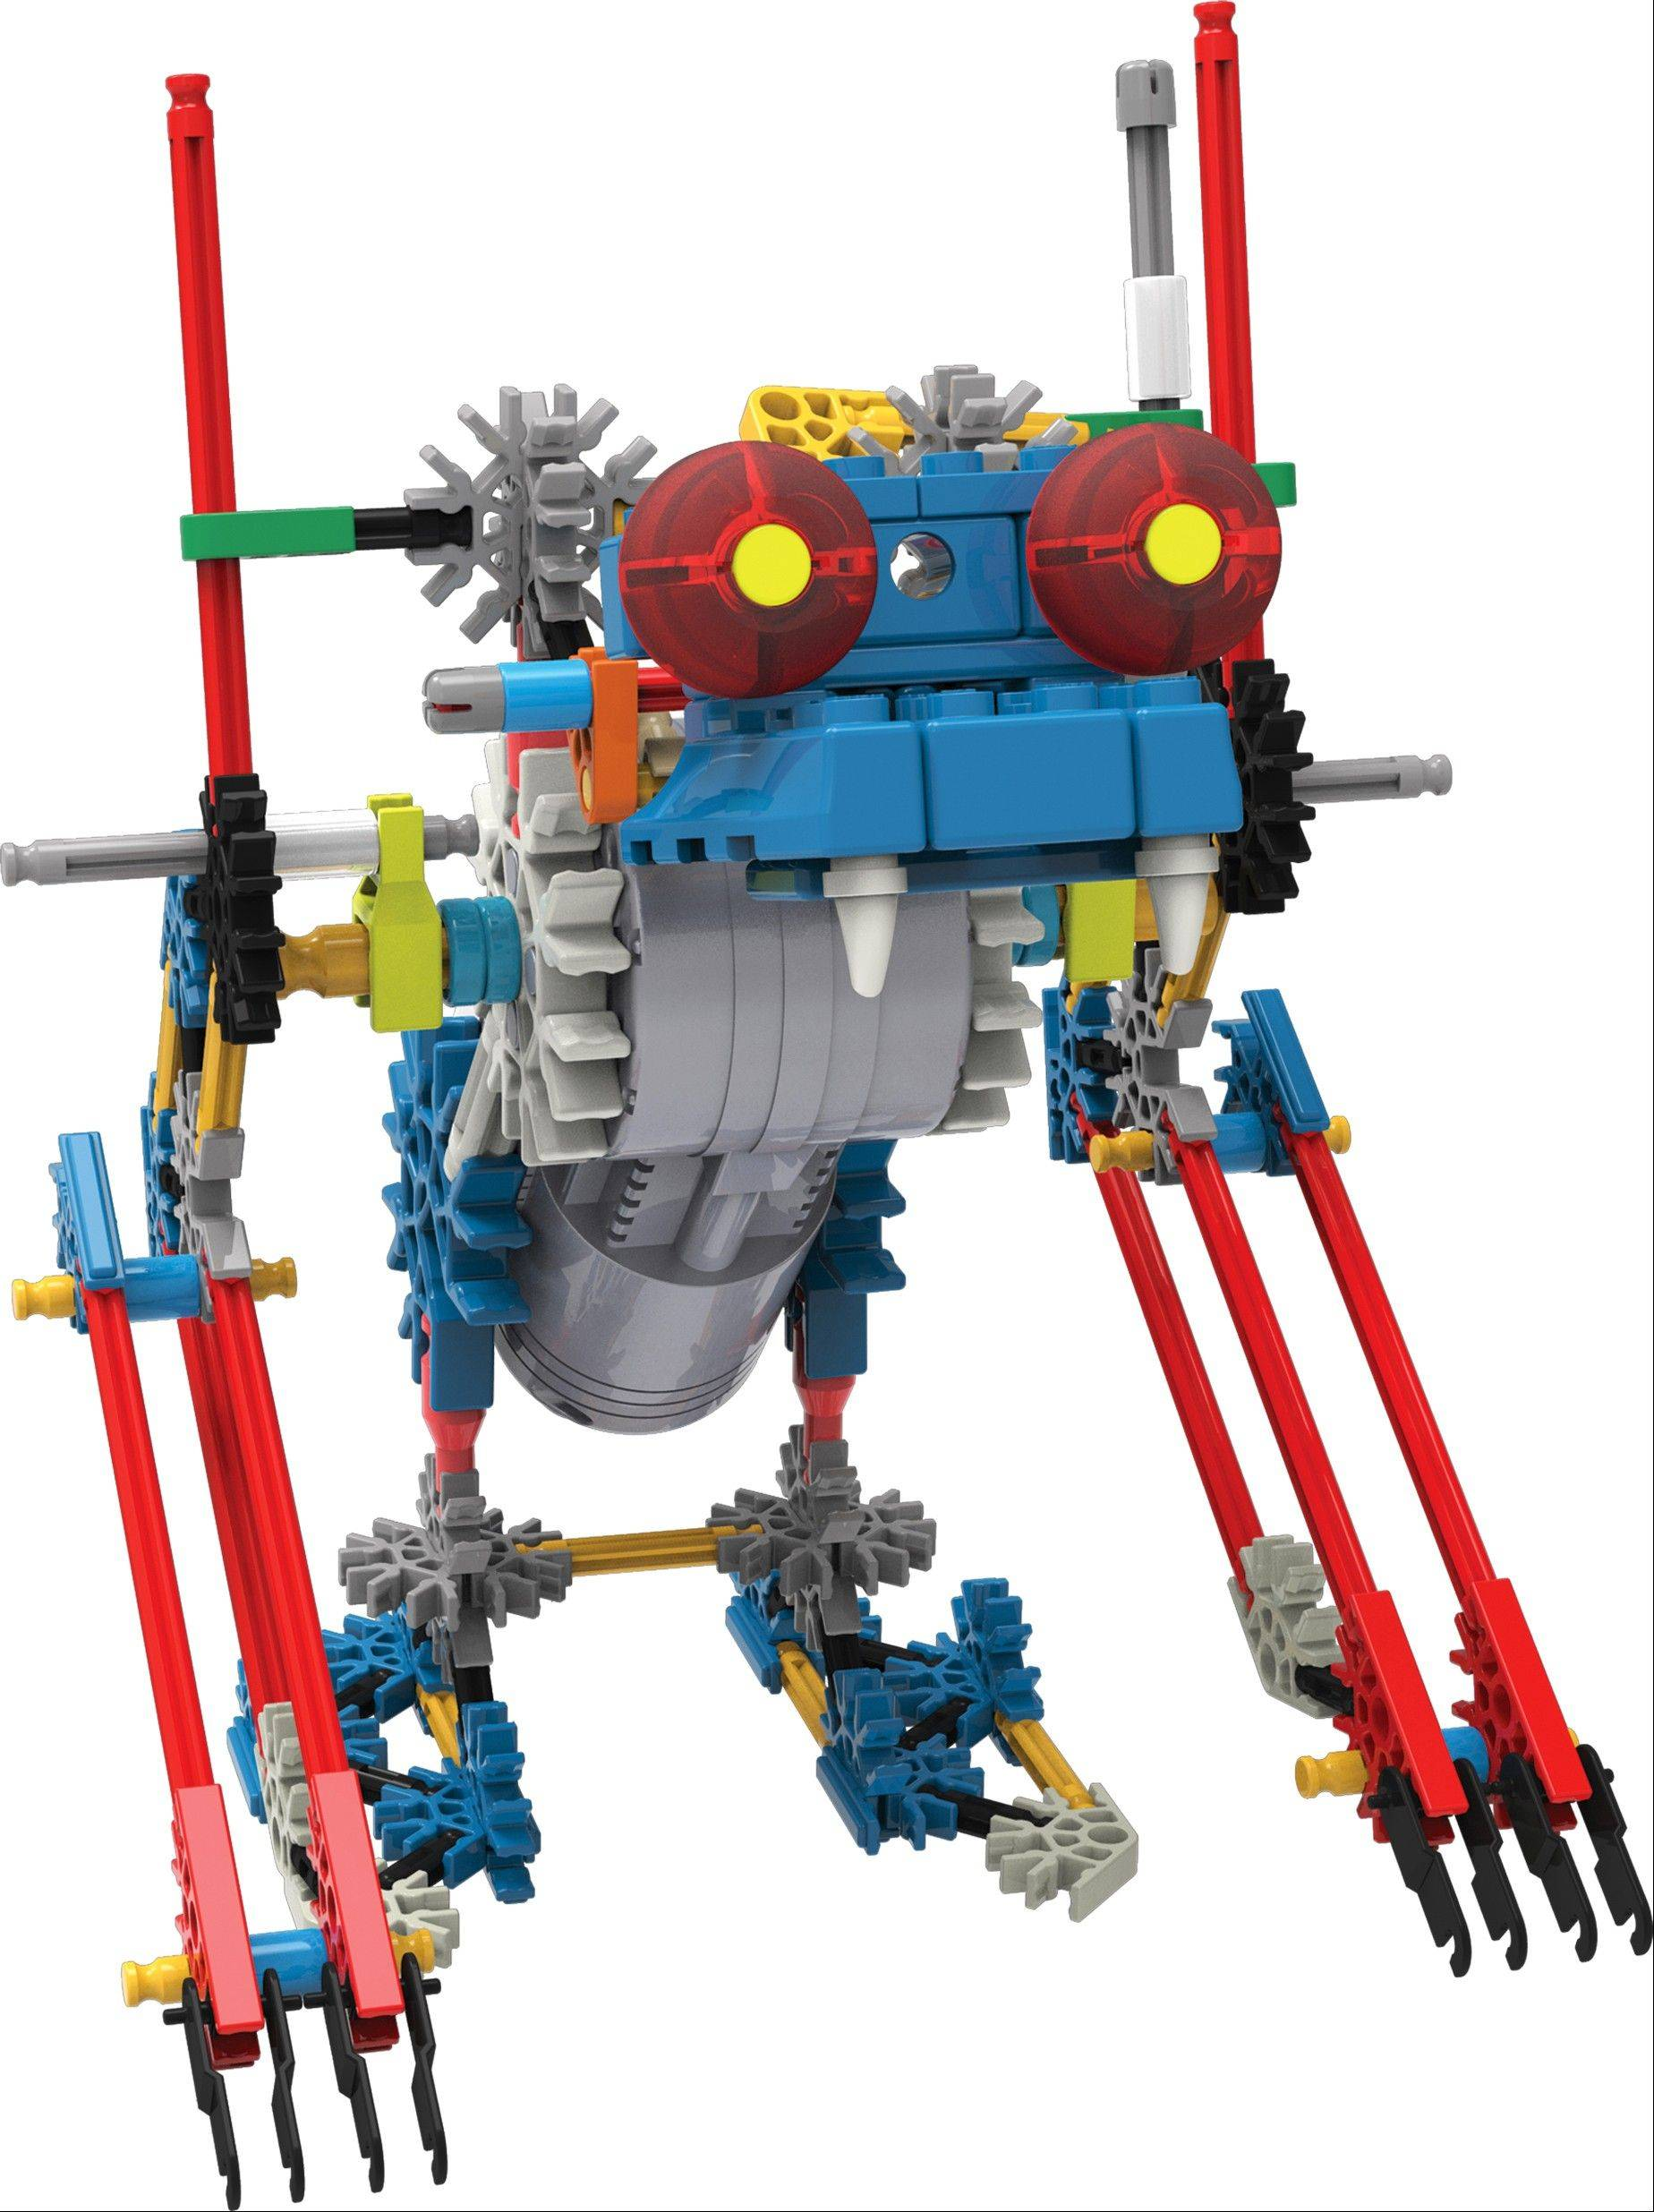 A K�NEX Robo Creature can be built individually then attached to make even more elaborate creatures. Open ended creativity is something parents are looking for in toy purchases.